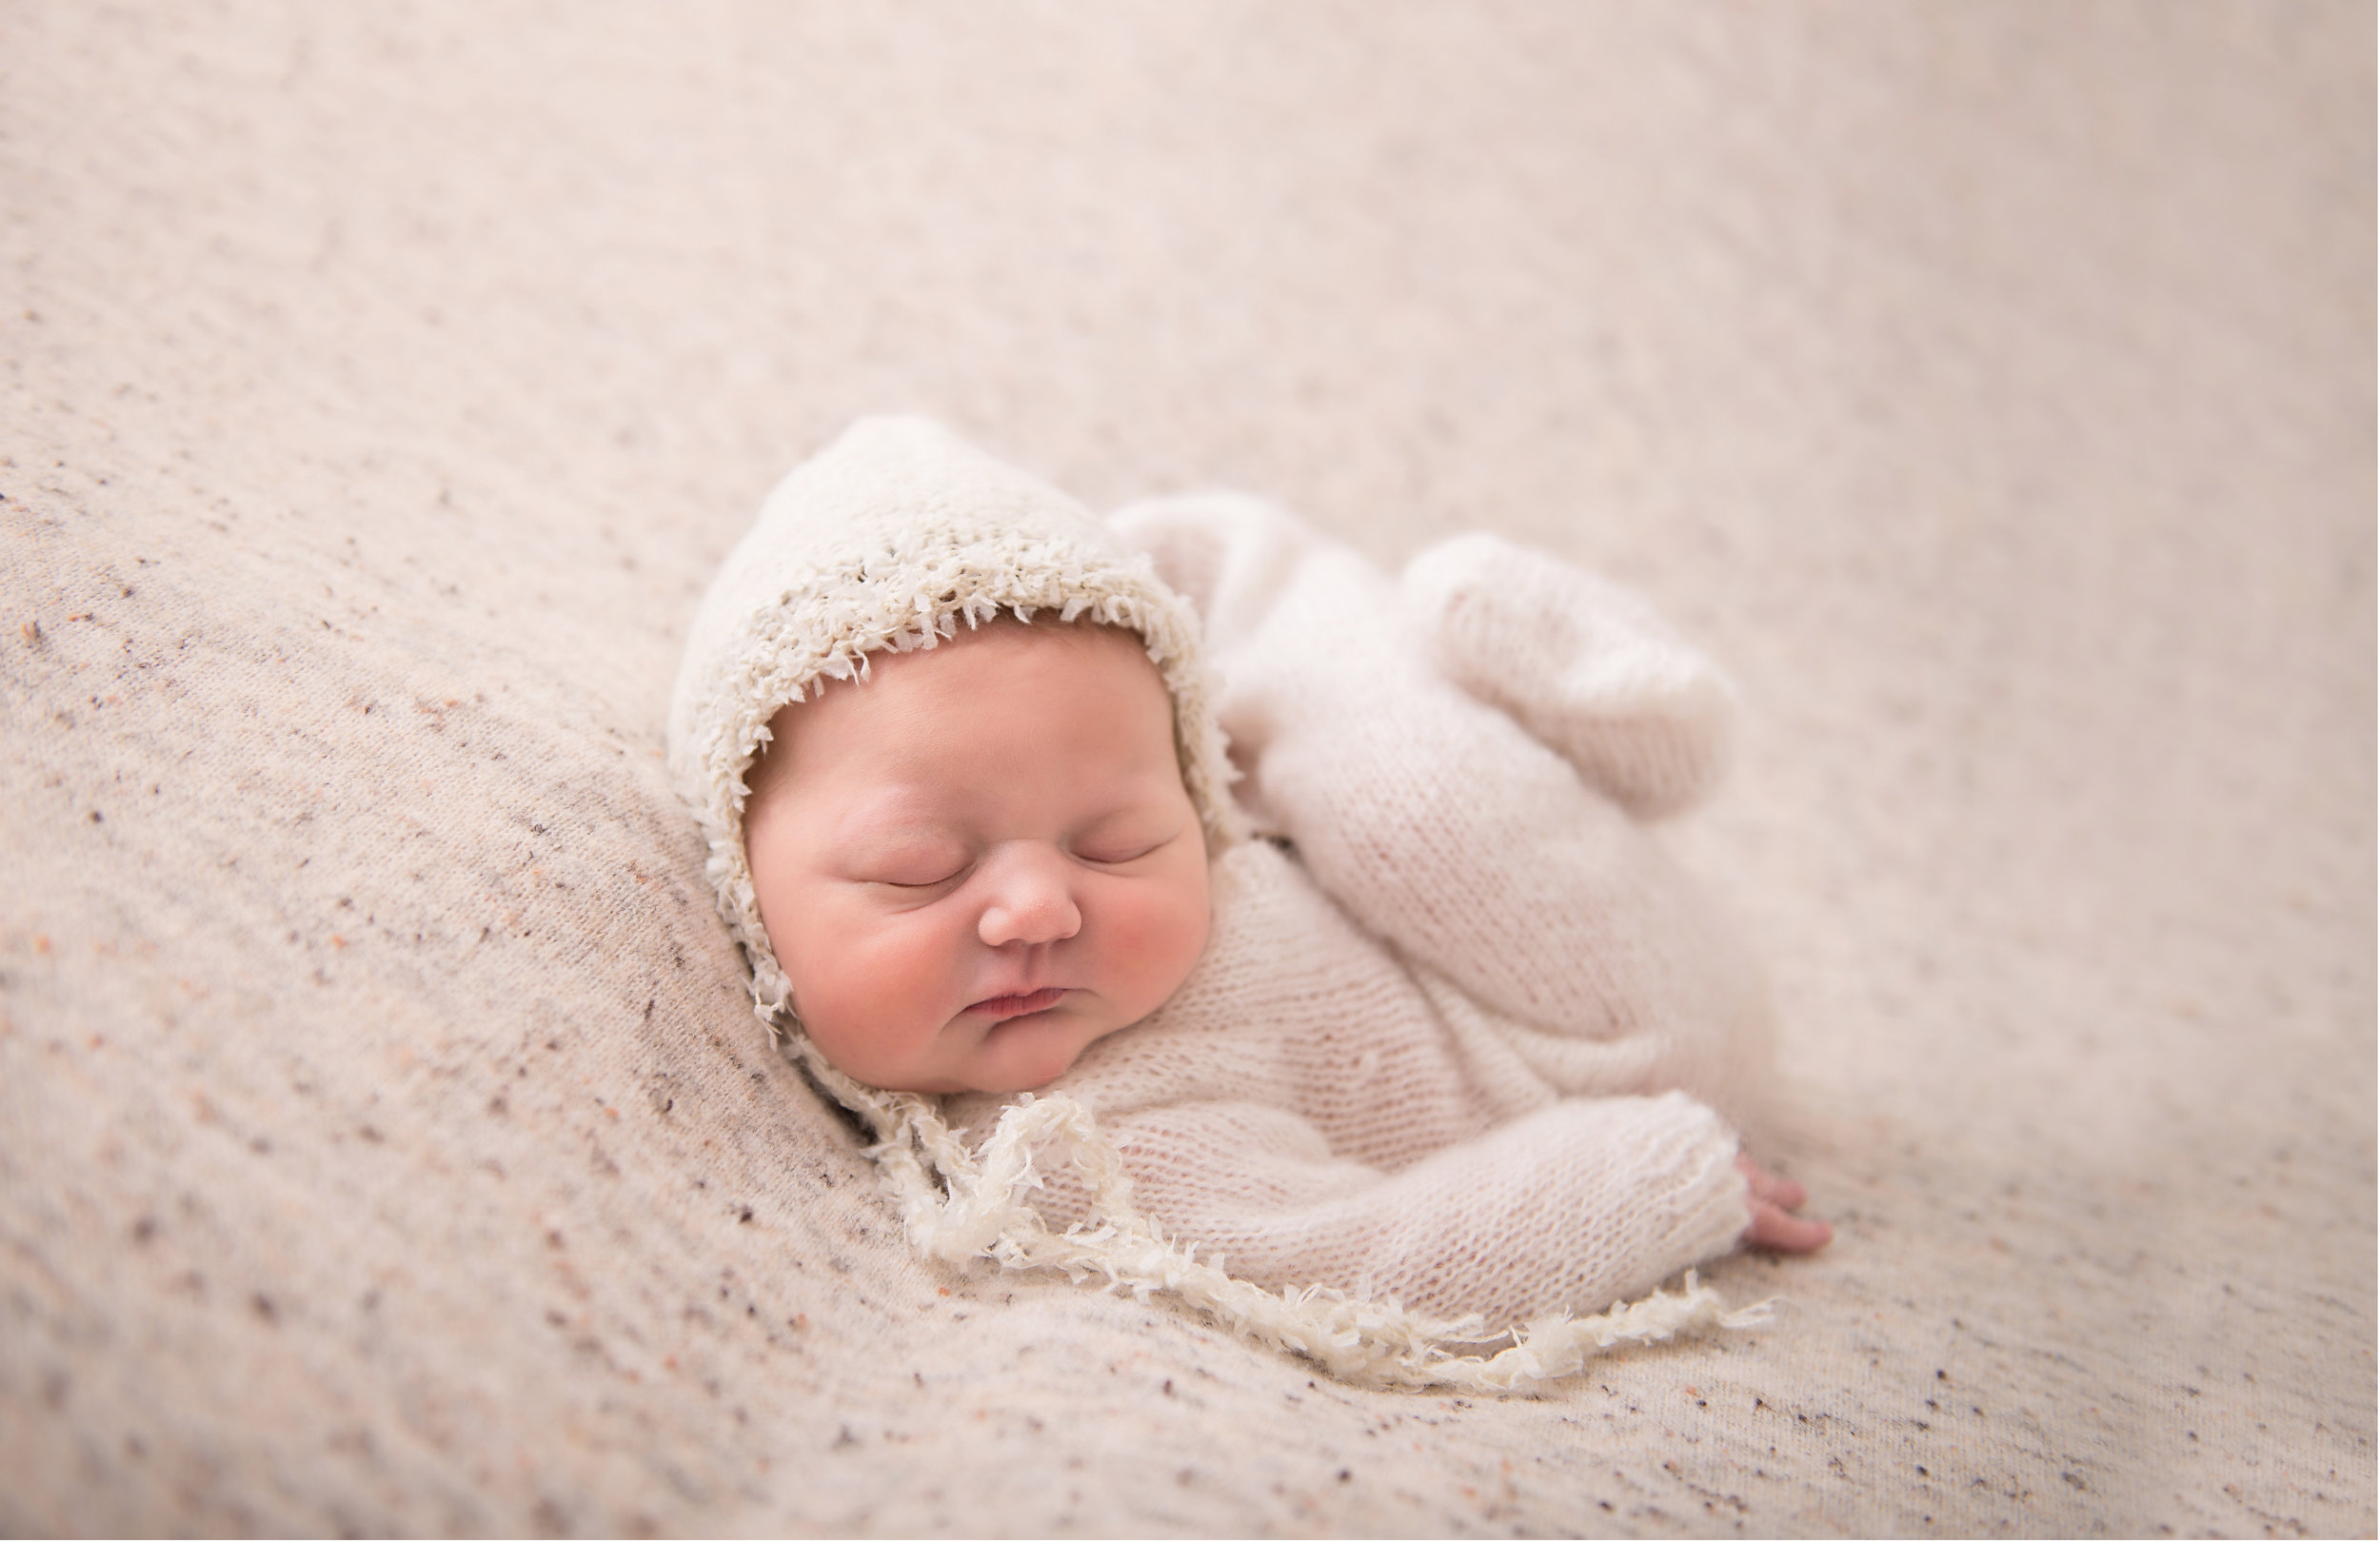 Rafter T Photography - Central Arkansas Newborn, Child, and Family Portraiture